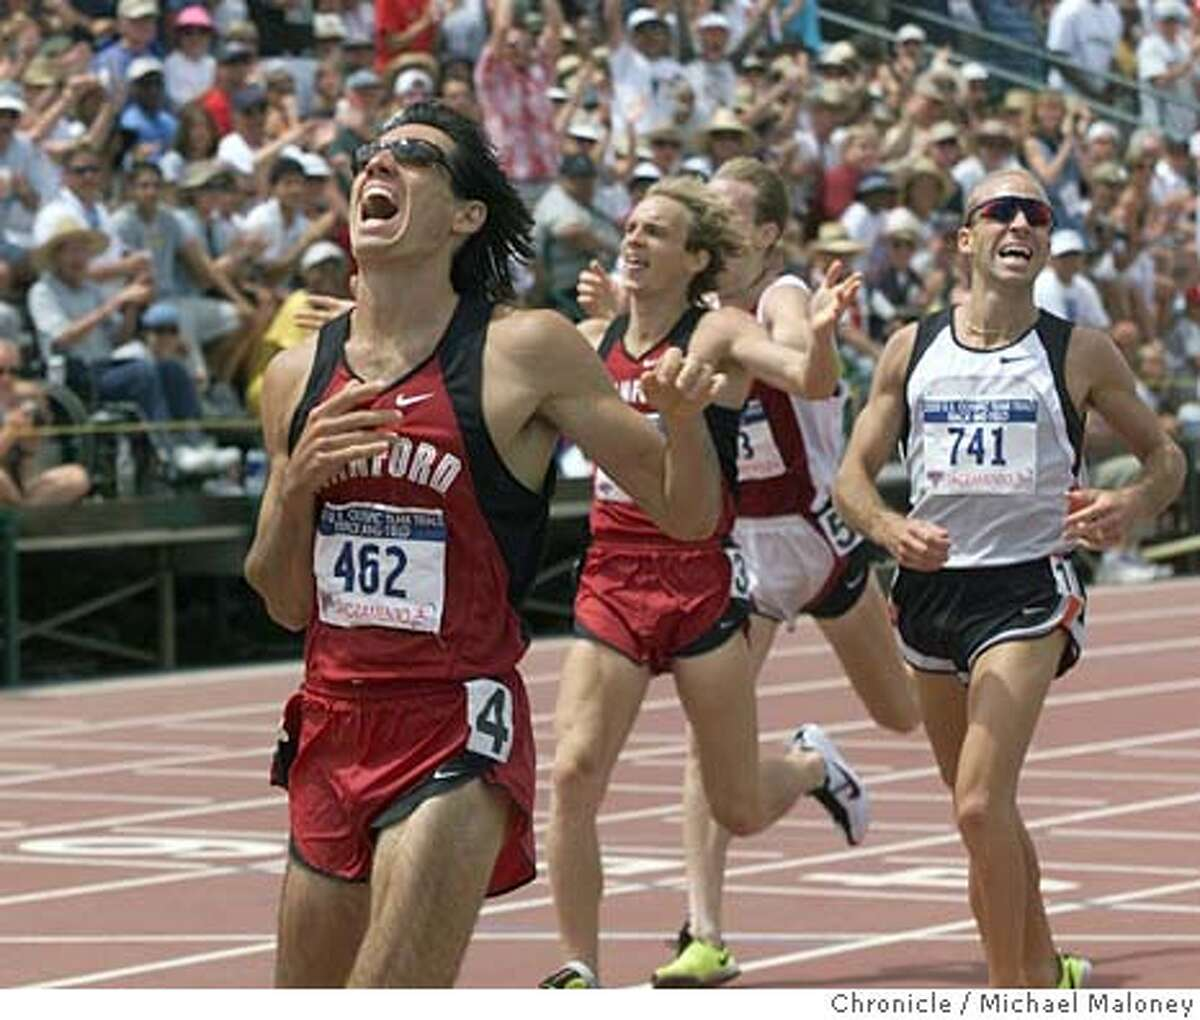 TRACK1500-C-16UL00-SP-MJM Gabe Jennings and Michael Stember cross the finishline in the 1500 meter first and third. #741 is Jason Pyrah who finished 2nd. US Olympic Track and Field Trials at Sacramento State's Hornet Field. CHRONICLE PHOTO BY MICHAEL MALONEY